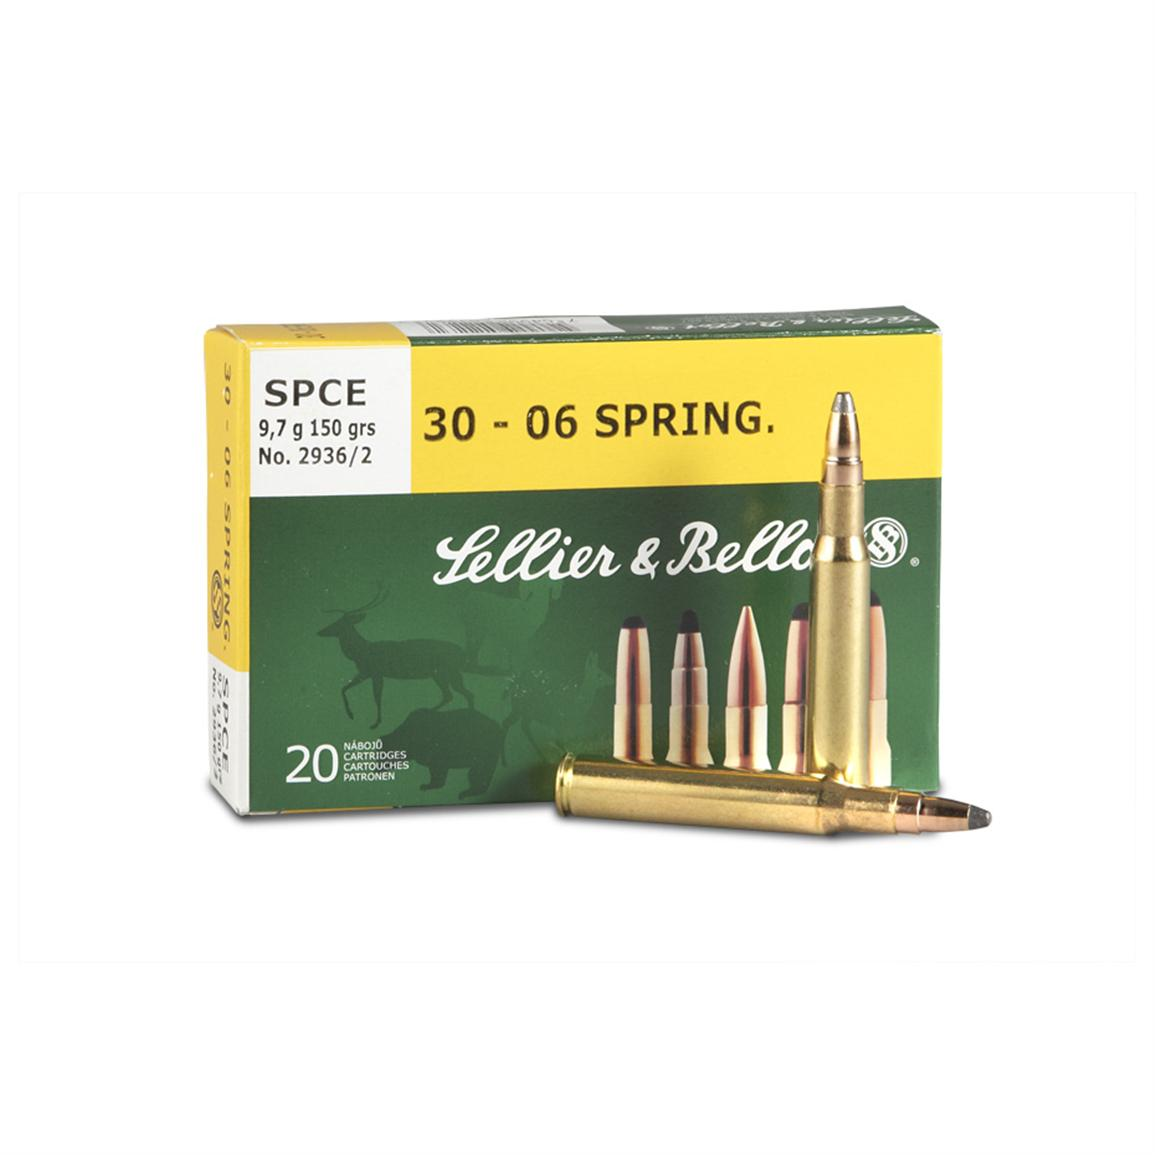 Sellier & Bellot Soft Point Cutting Edge Ammunition